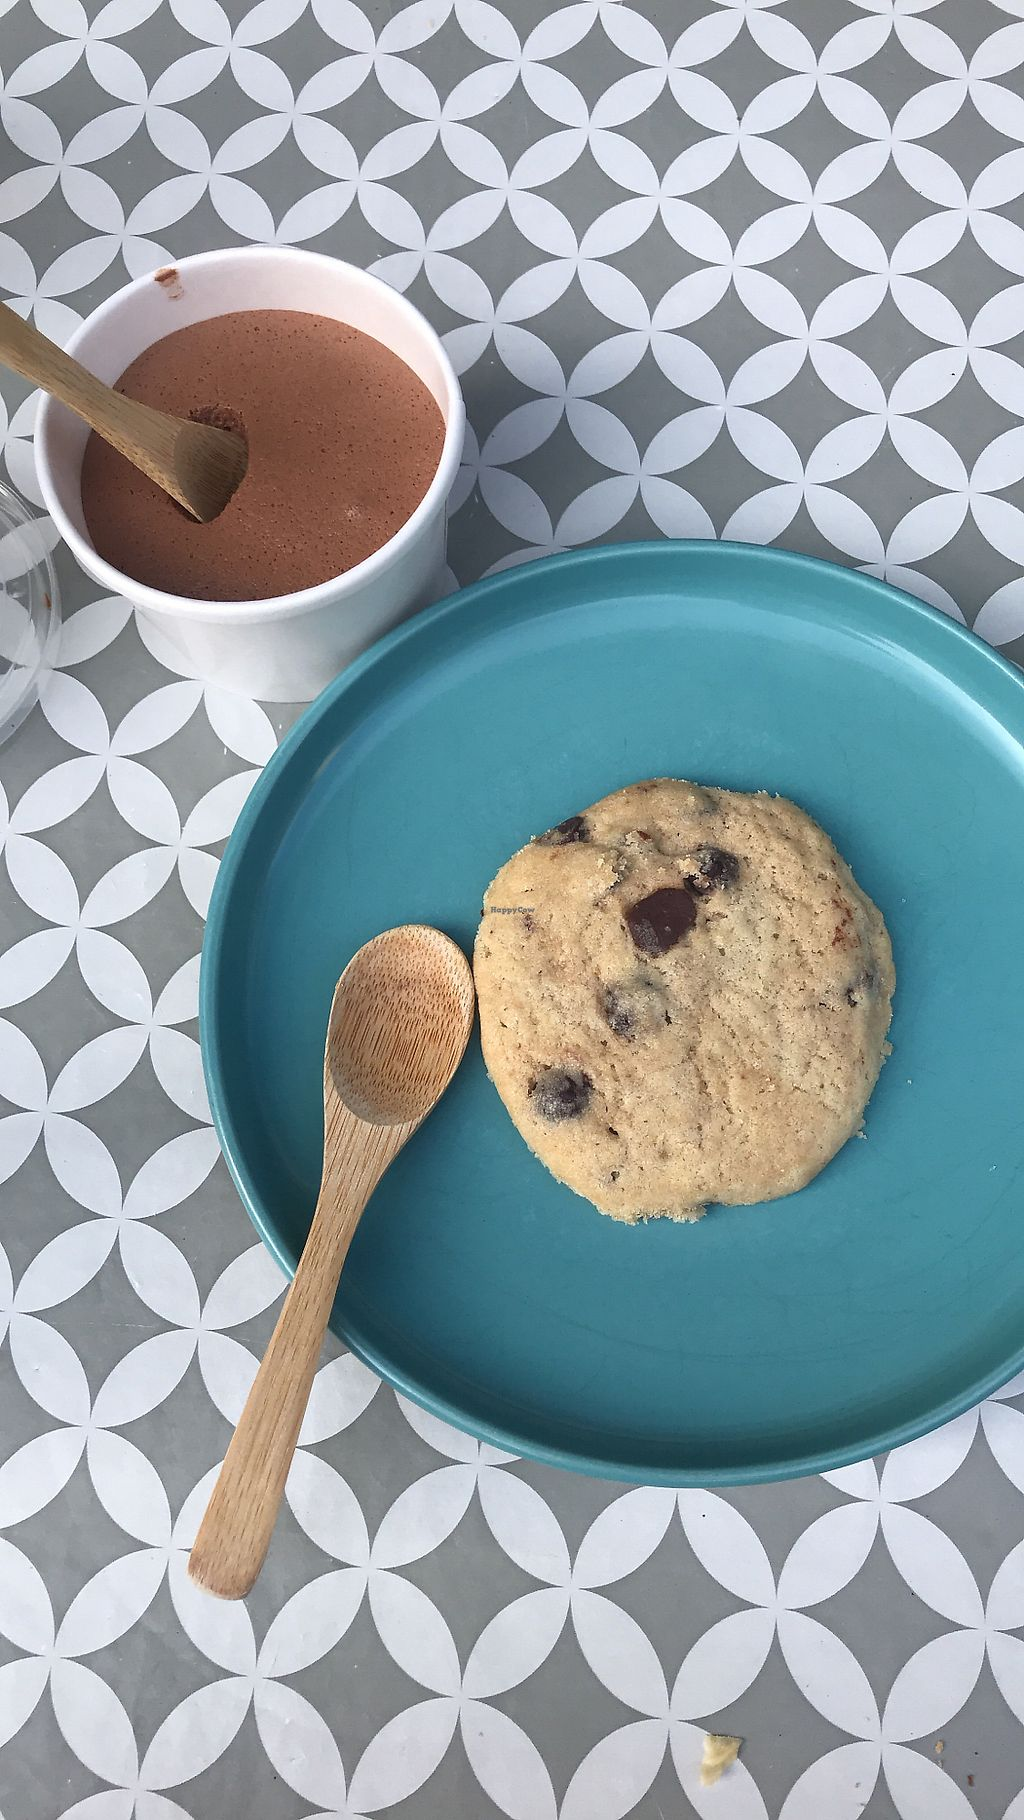 """Photo of Munchies  by <a href=""""/members/profile/sasha_lucy"""">sasha_lucy</a> <br/>Incredible chocolate mousse and homemade cookie <br/> May 22, 2018  - <a href='/contact/abuse/image/81024/403517'>Report</a>"""